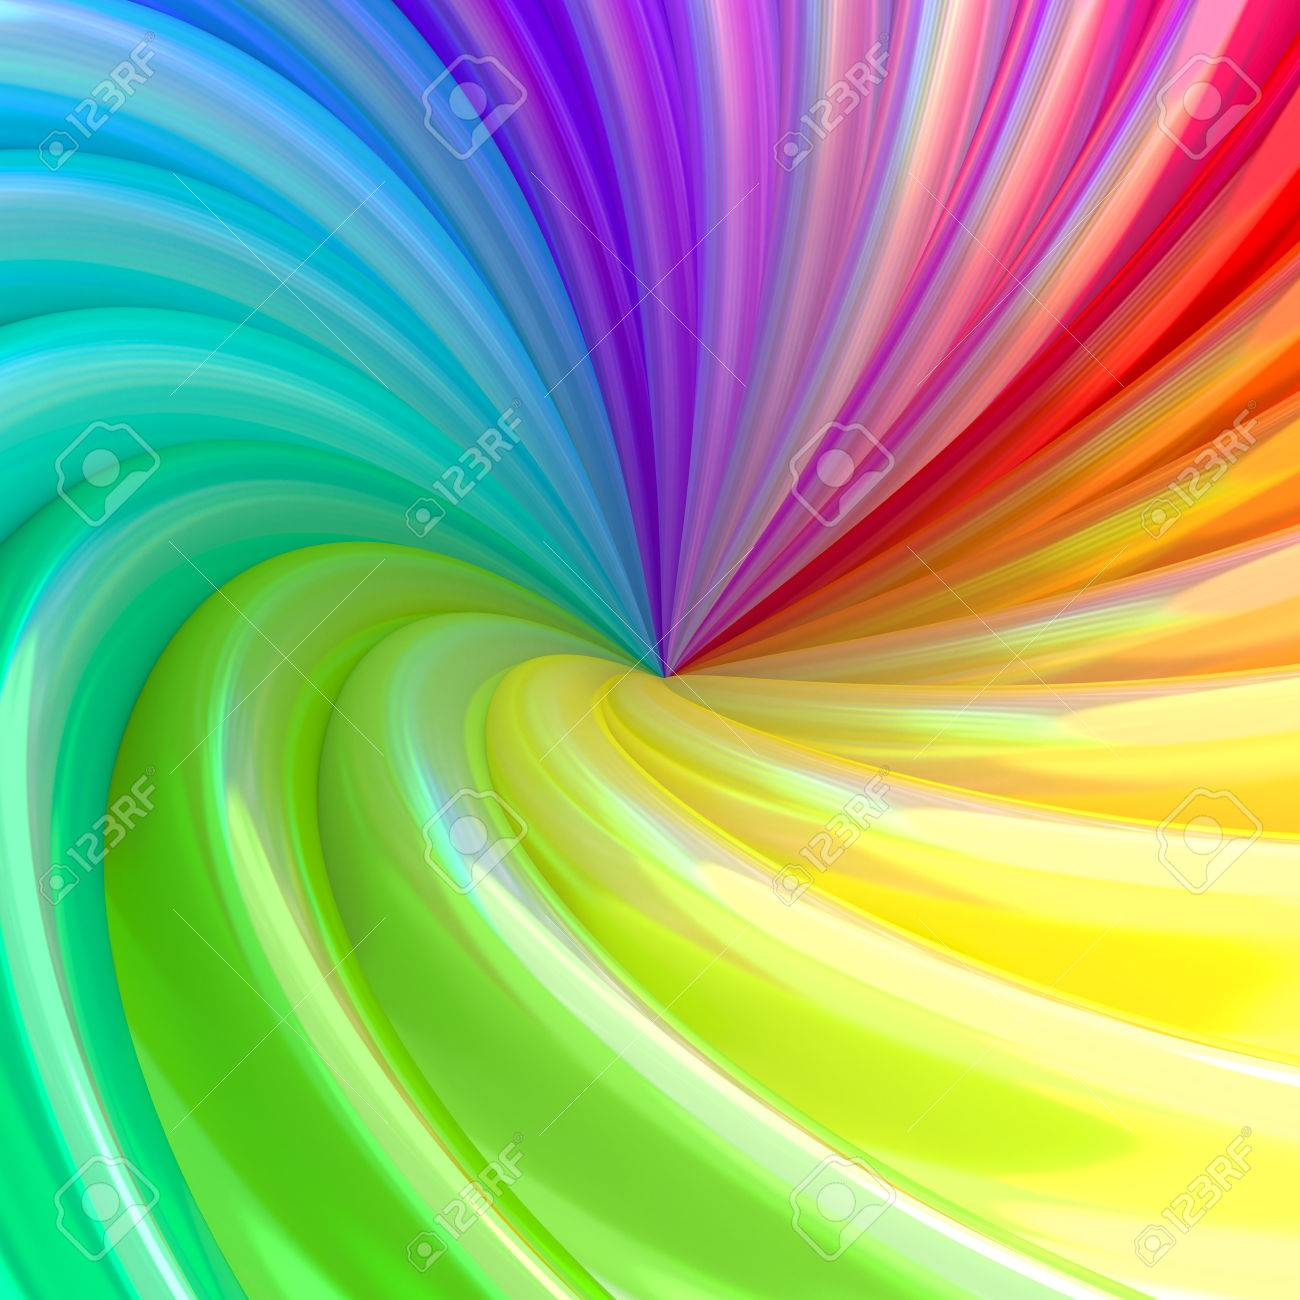 Abstract Background Of Colorful Swirl Pipes High Resolution